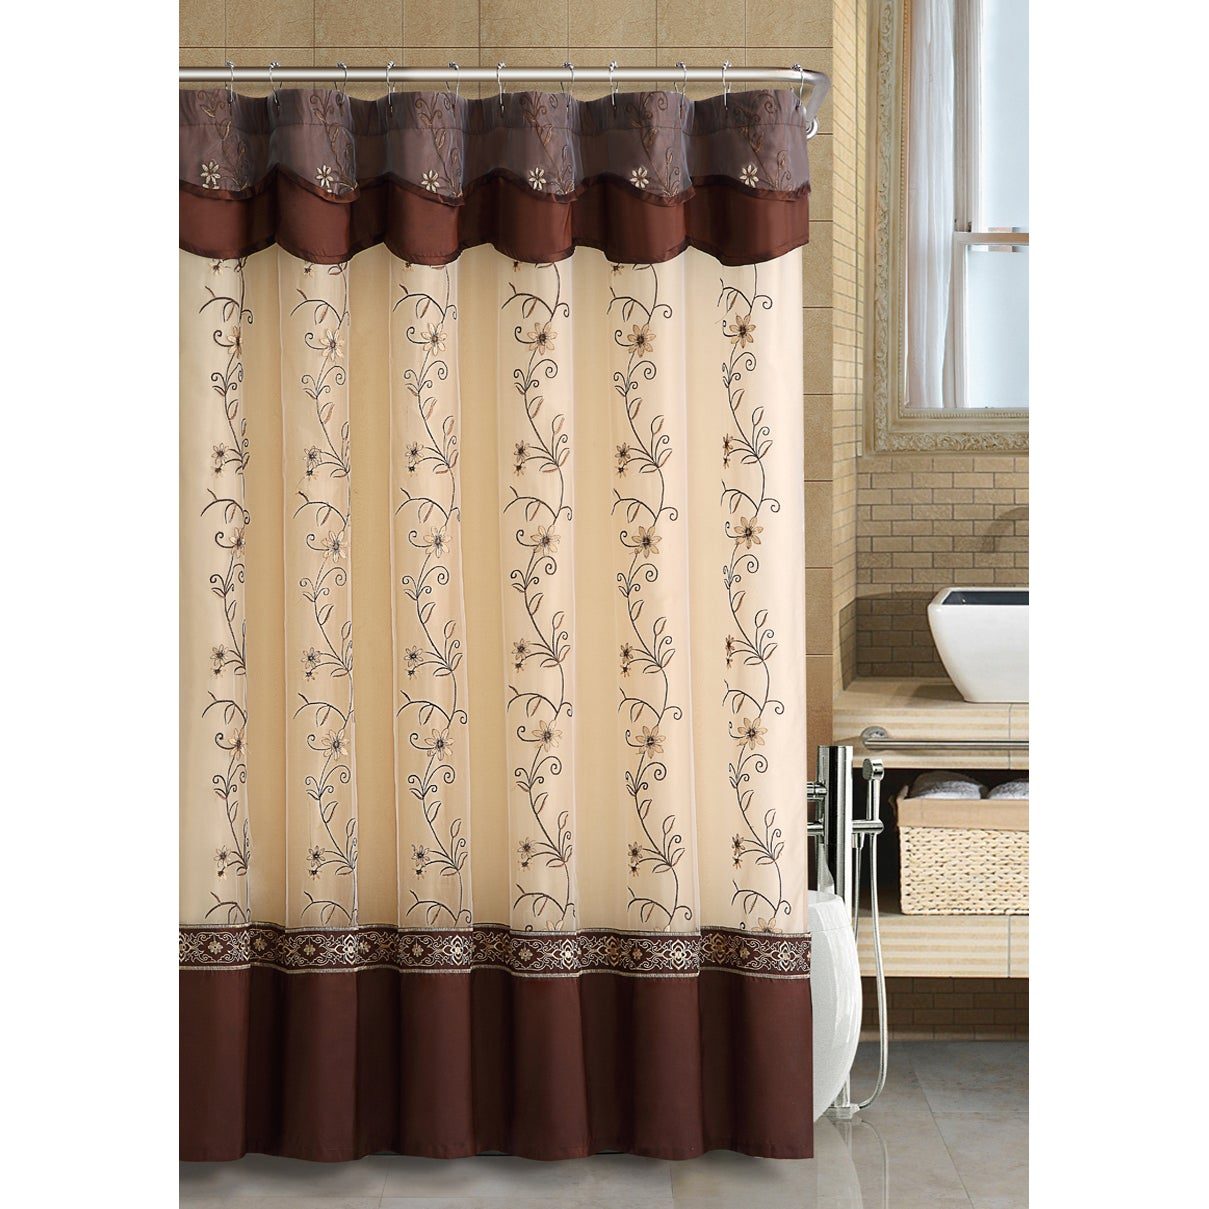 New Chocolate Shower Curtain Bathroom Decoration Bath Set Shower Decor ...